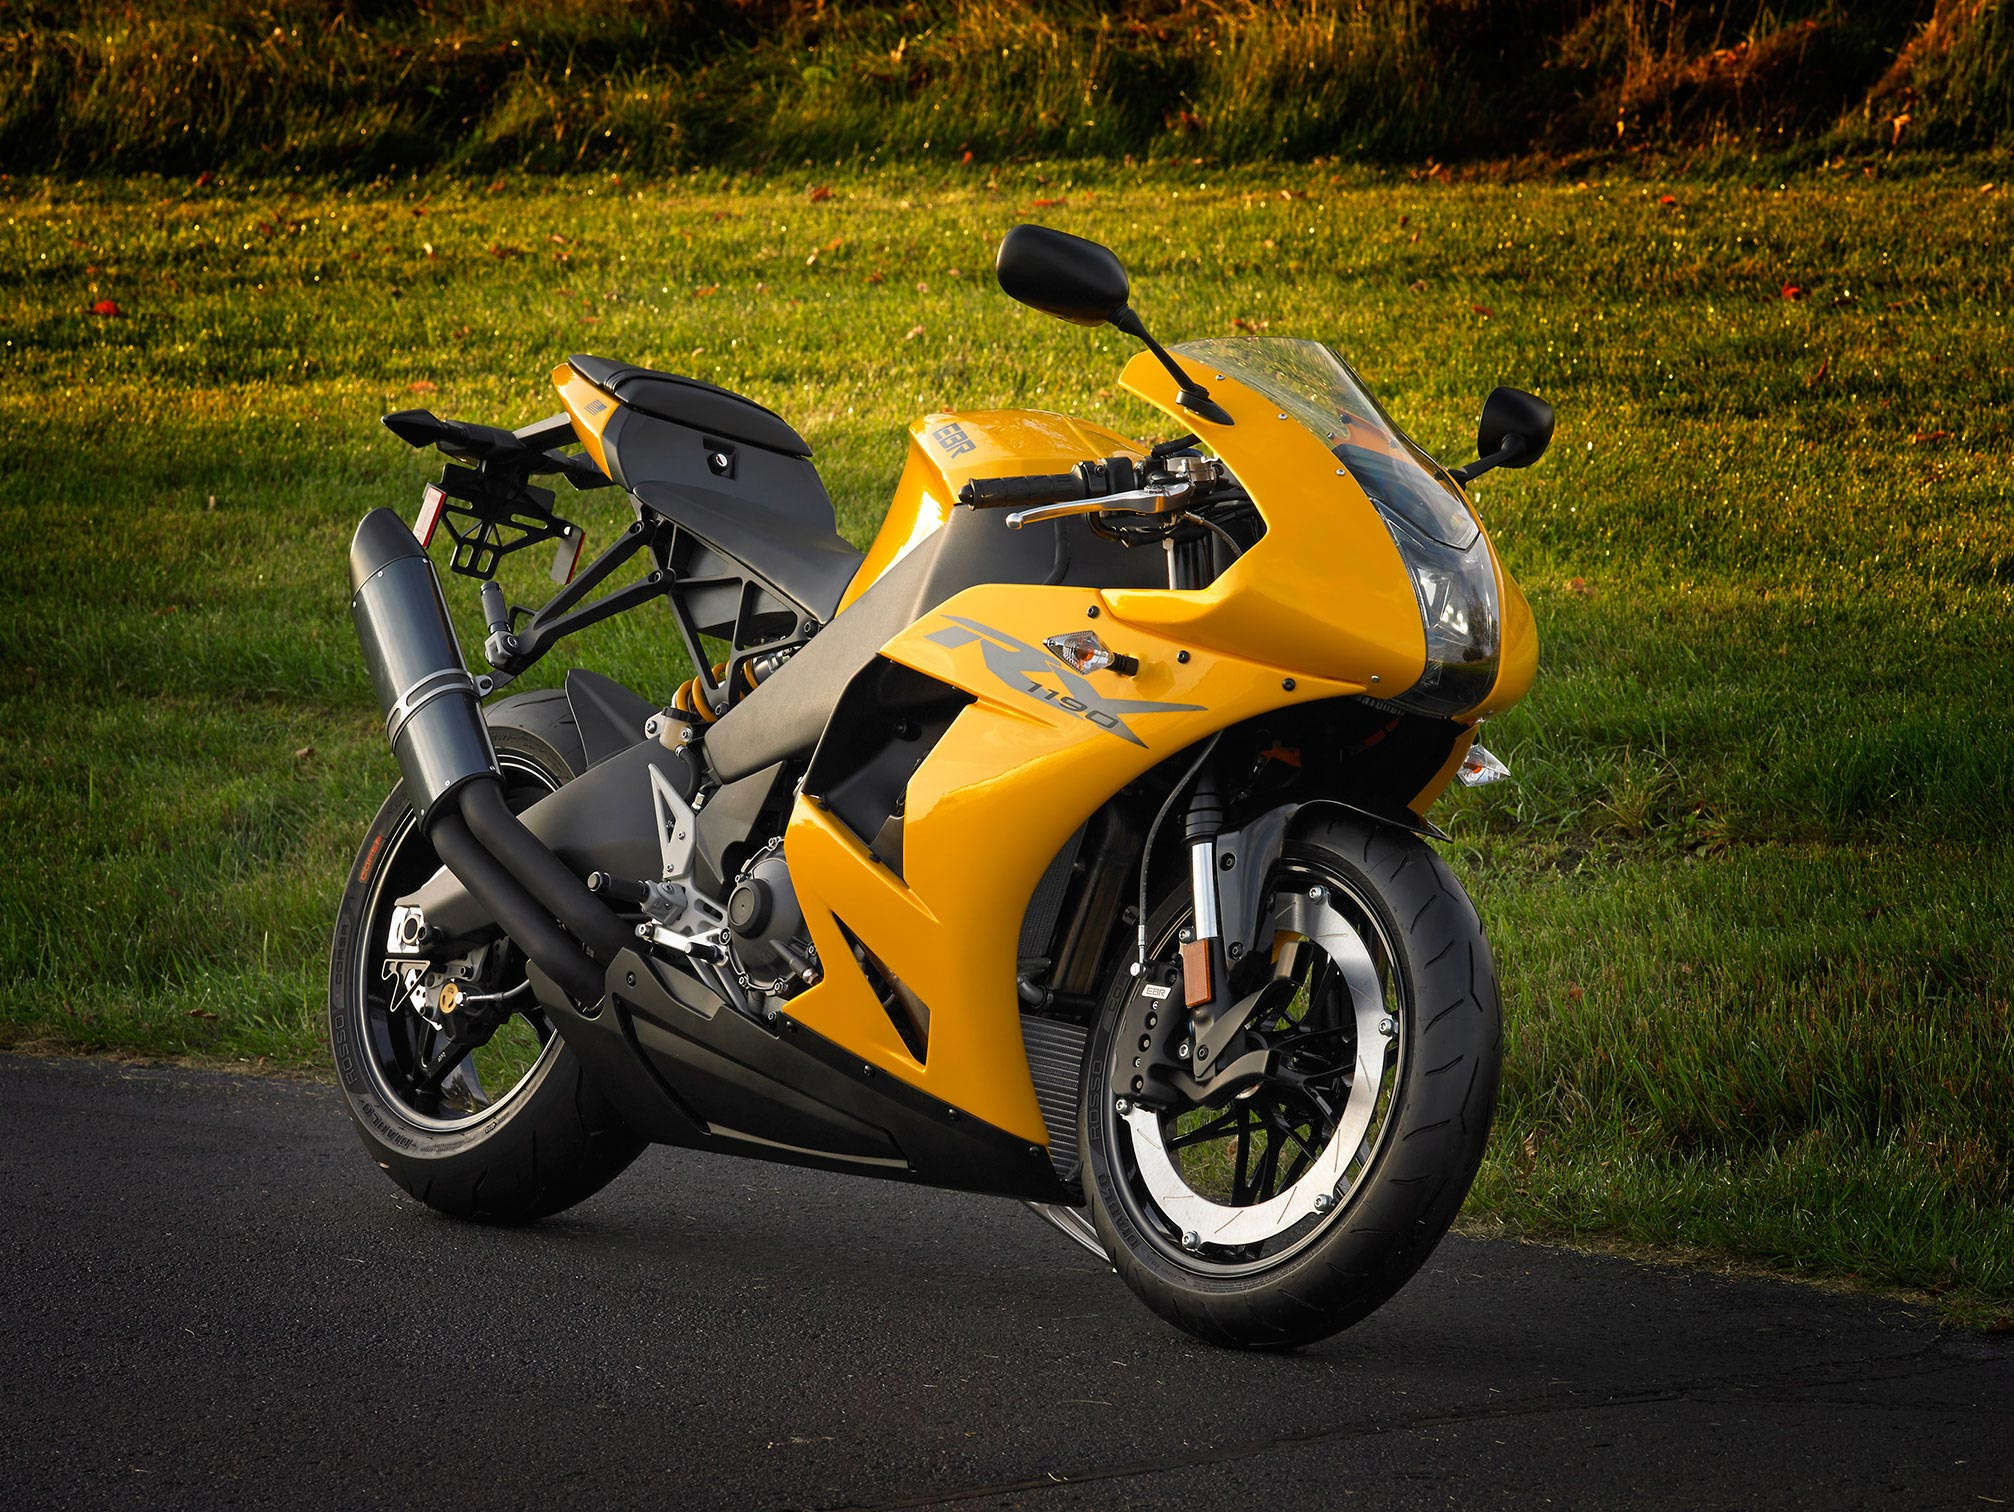 2014 EBR (Erik Buell Racing) Motorcycle Models